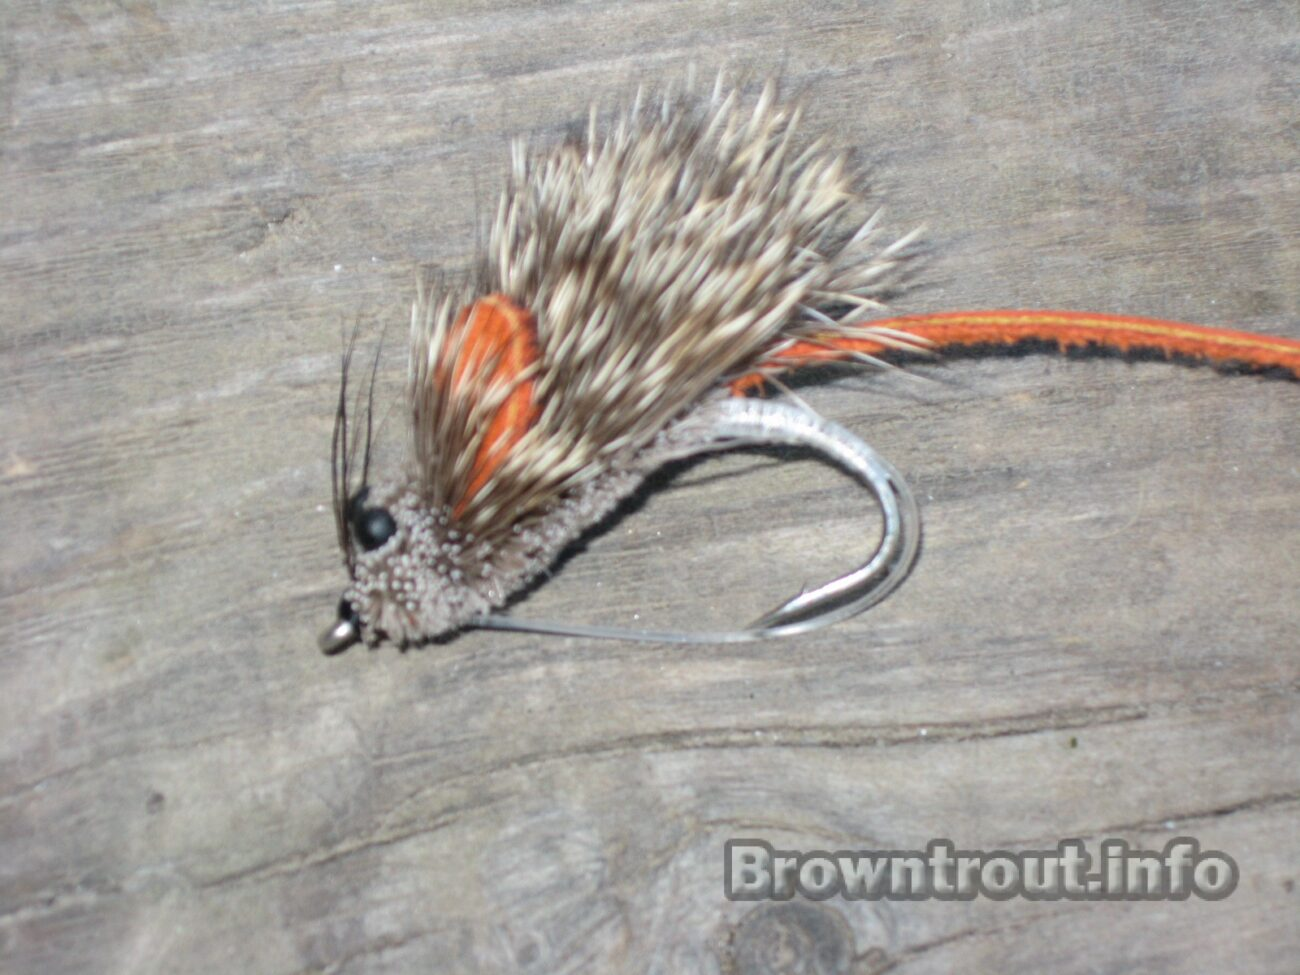 Mini mouse pattern with leather tail and ears, The best Mouse fly patterns for fly fishing trout at night, streamer fly patterns, streamer flies for trout, mice tails for trout, trout streamer patterns